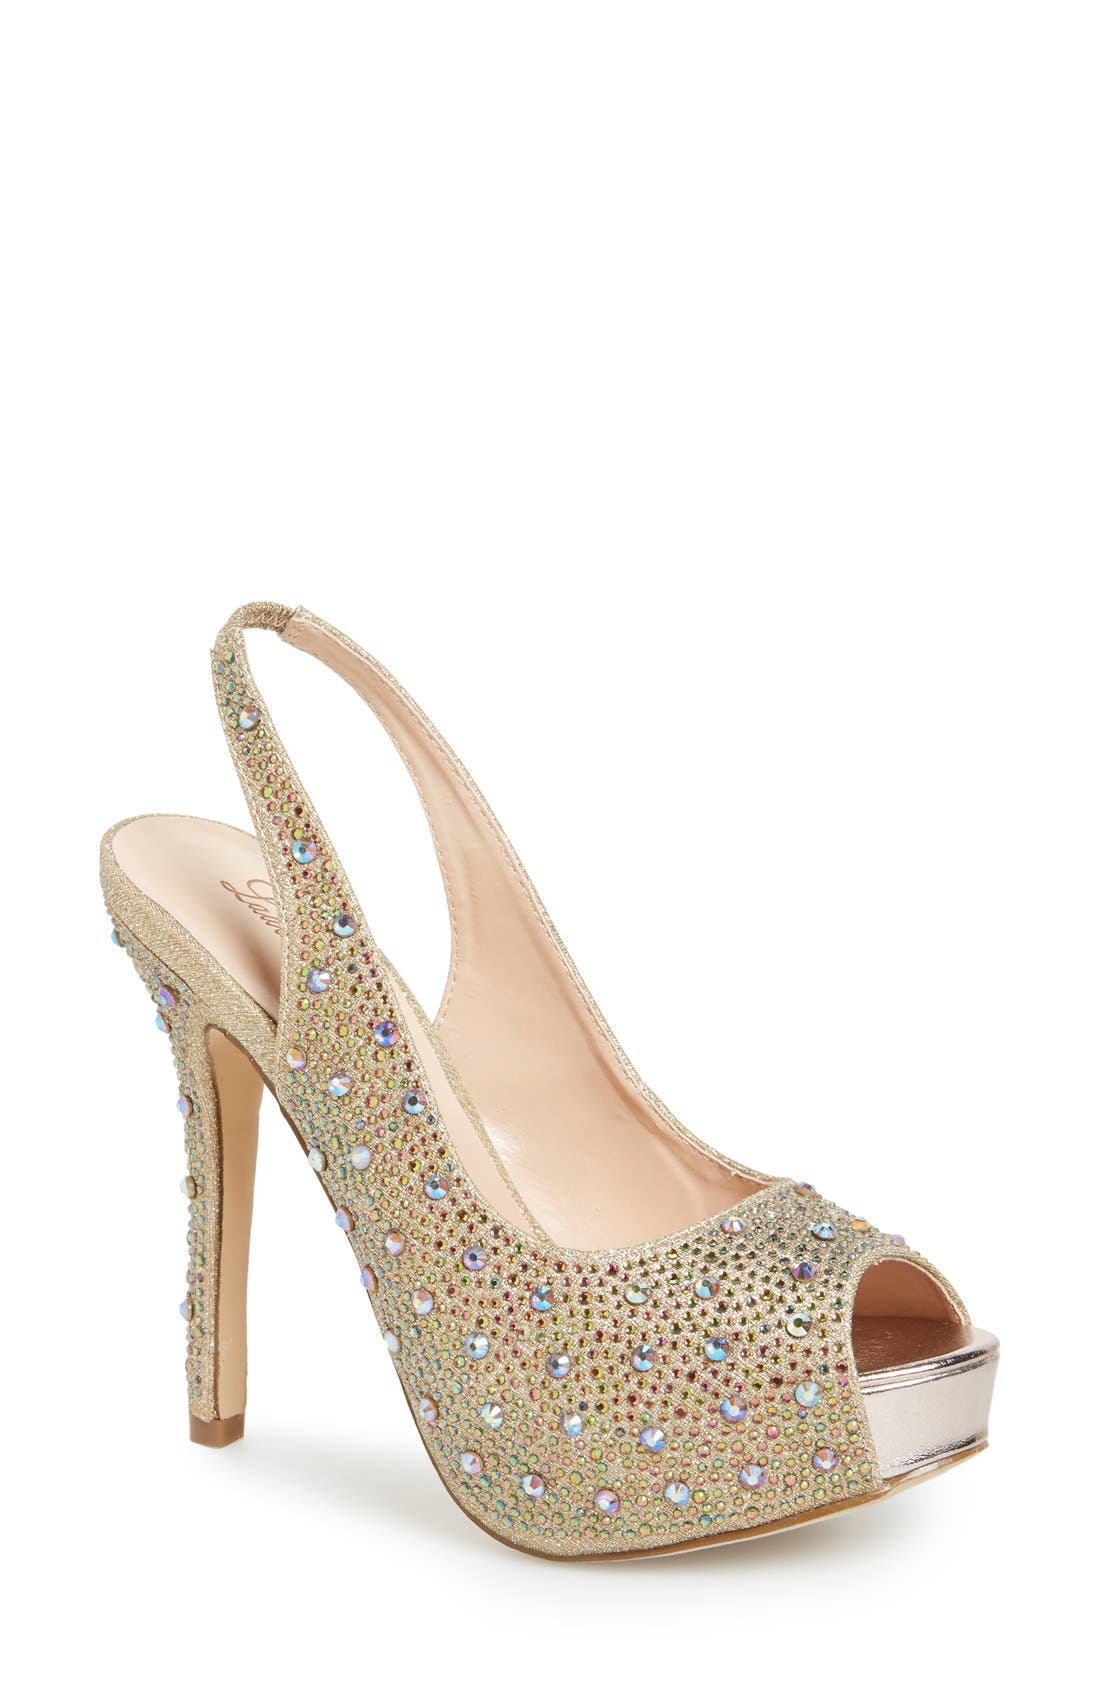 Alternate Image 1 Selected - Lauren Lorraine 'Candy' Crystal Slingback Pump (Women)